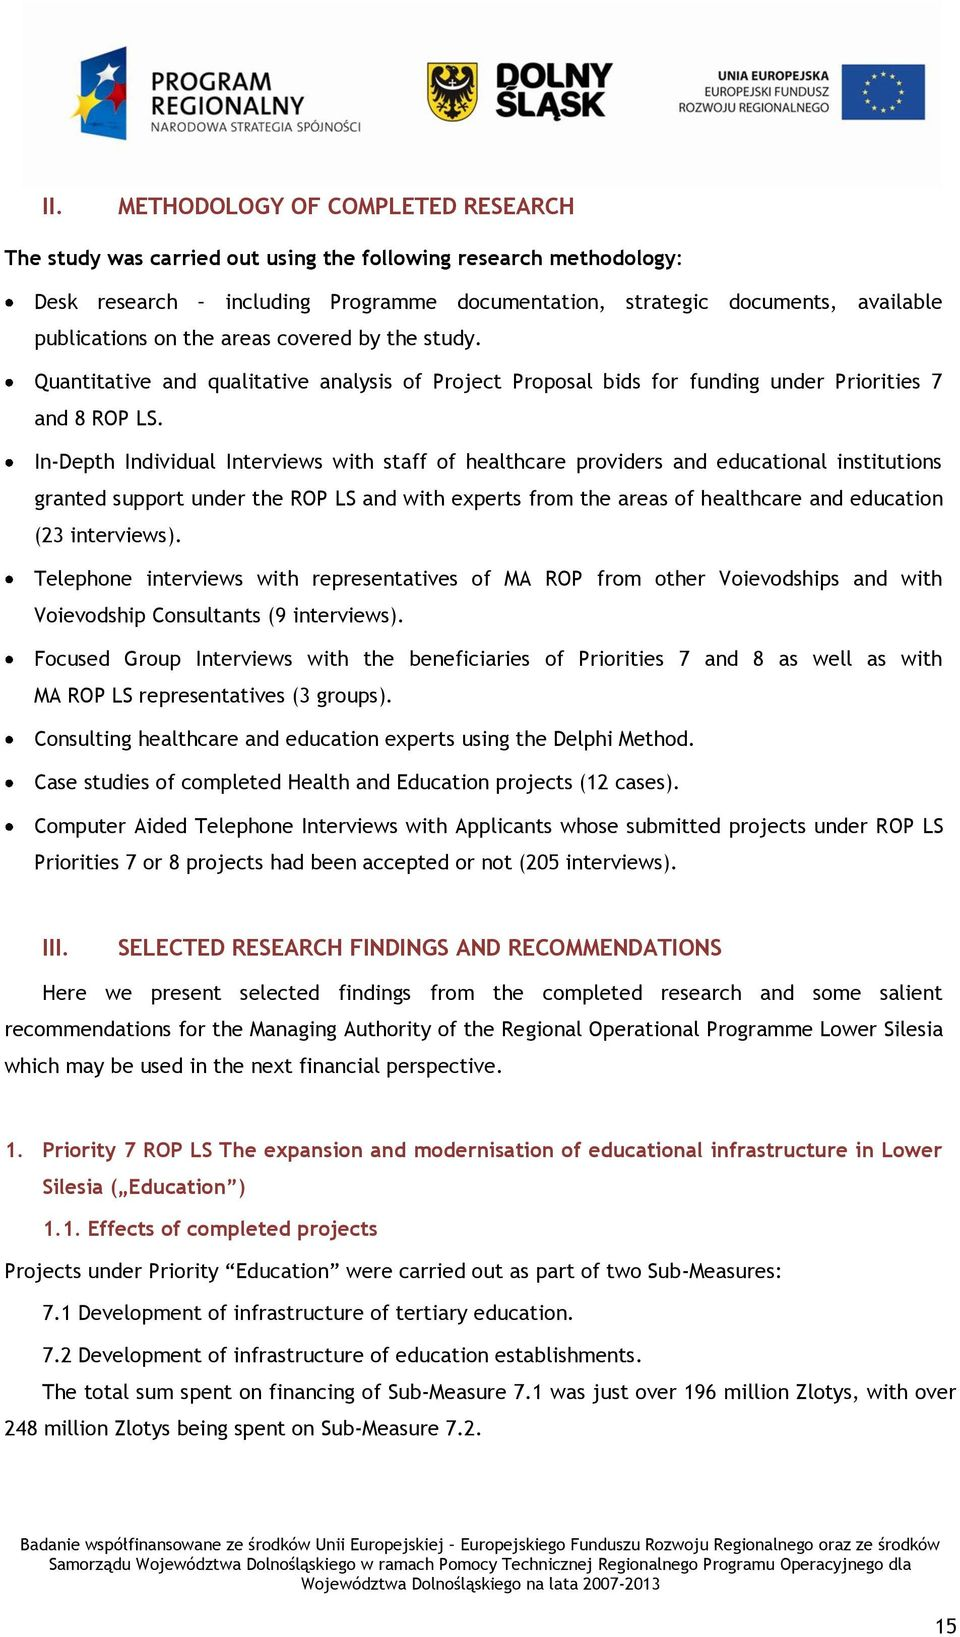 In-Depth Individual Interviews with staff of healthcare providers and educational institutions granted support under the ROP LS and with experts from the areas of healthcare and education (23